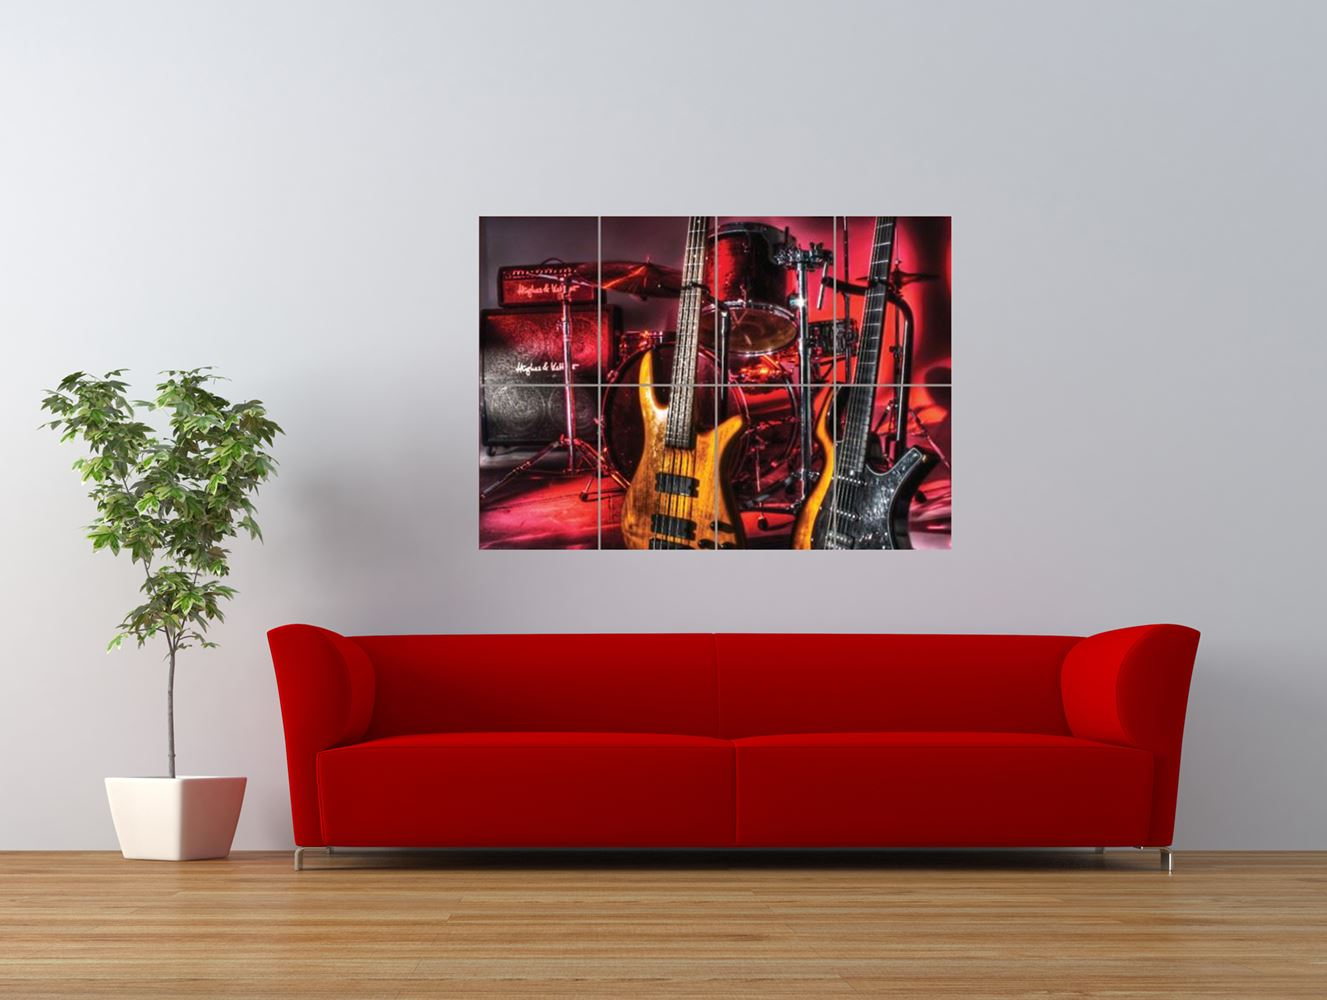 drums guitars bass music instrument giant art print panel poster nor0039 ebay. Black Bedroom Furniture Sets. Home Design Ideas